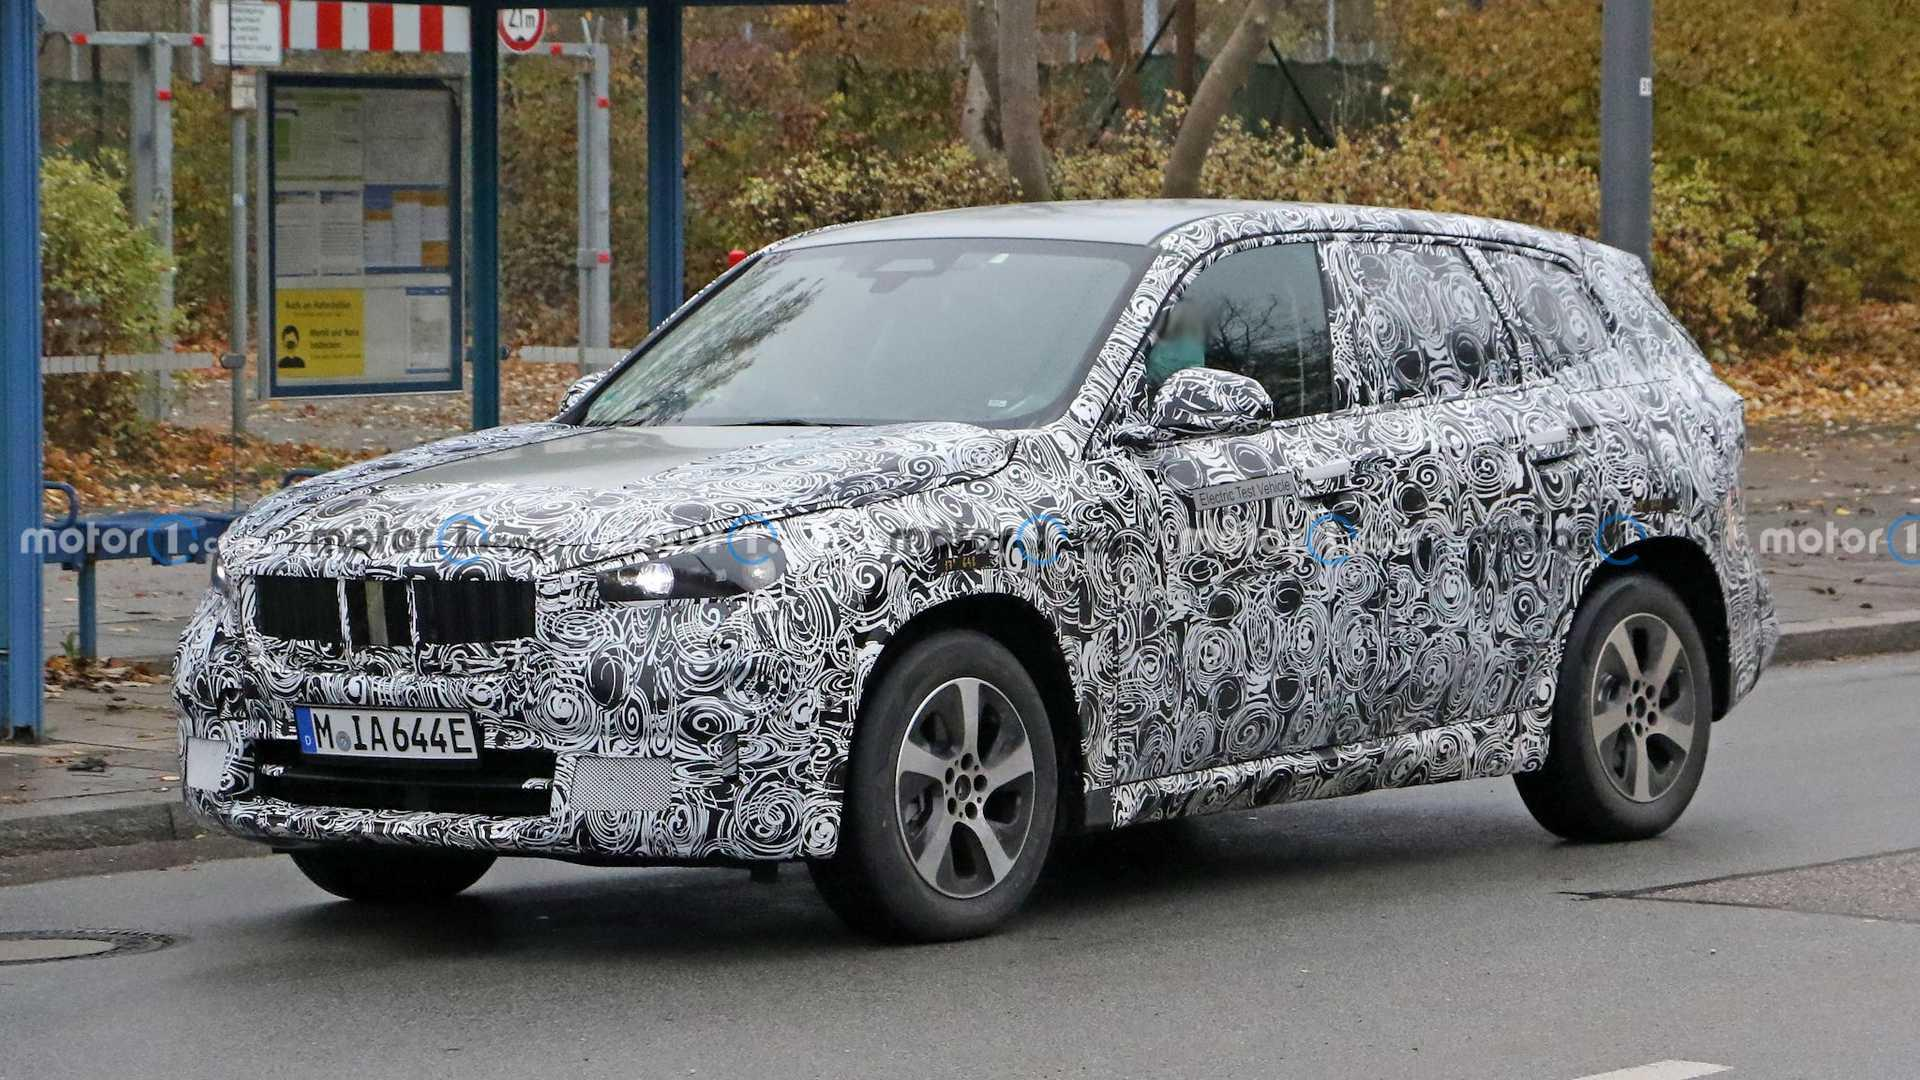 BMW iX1 electric SUV output to vary between 180 and 250 bhp